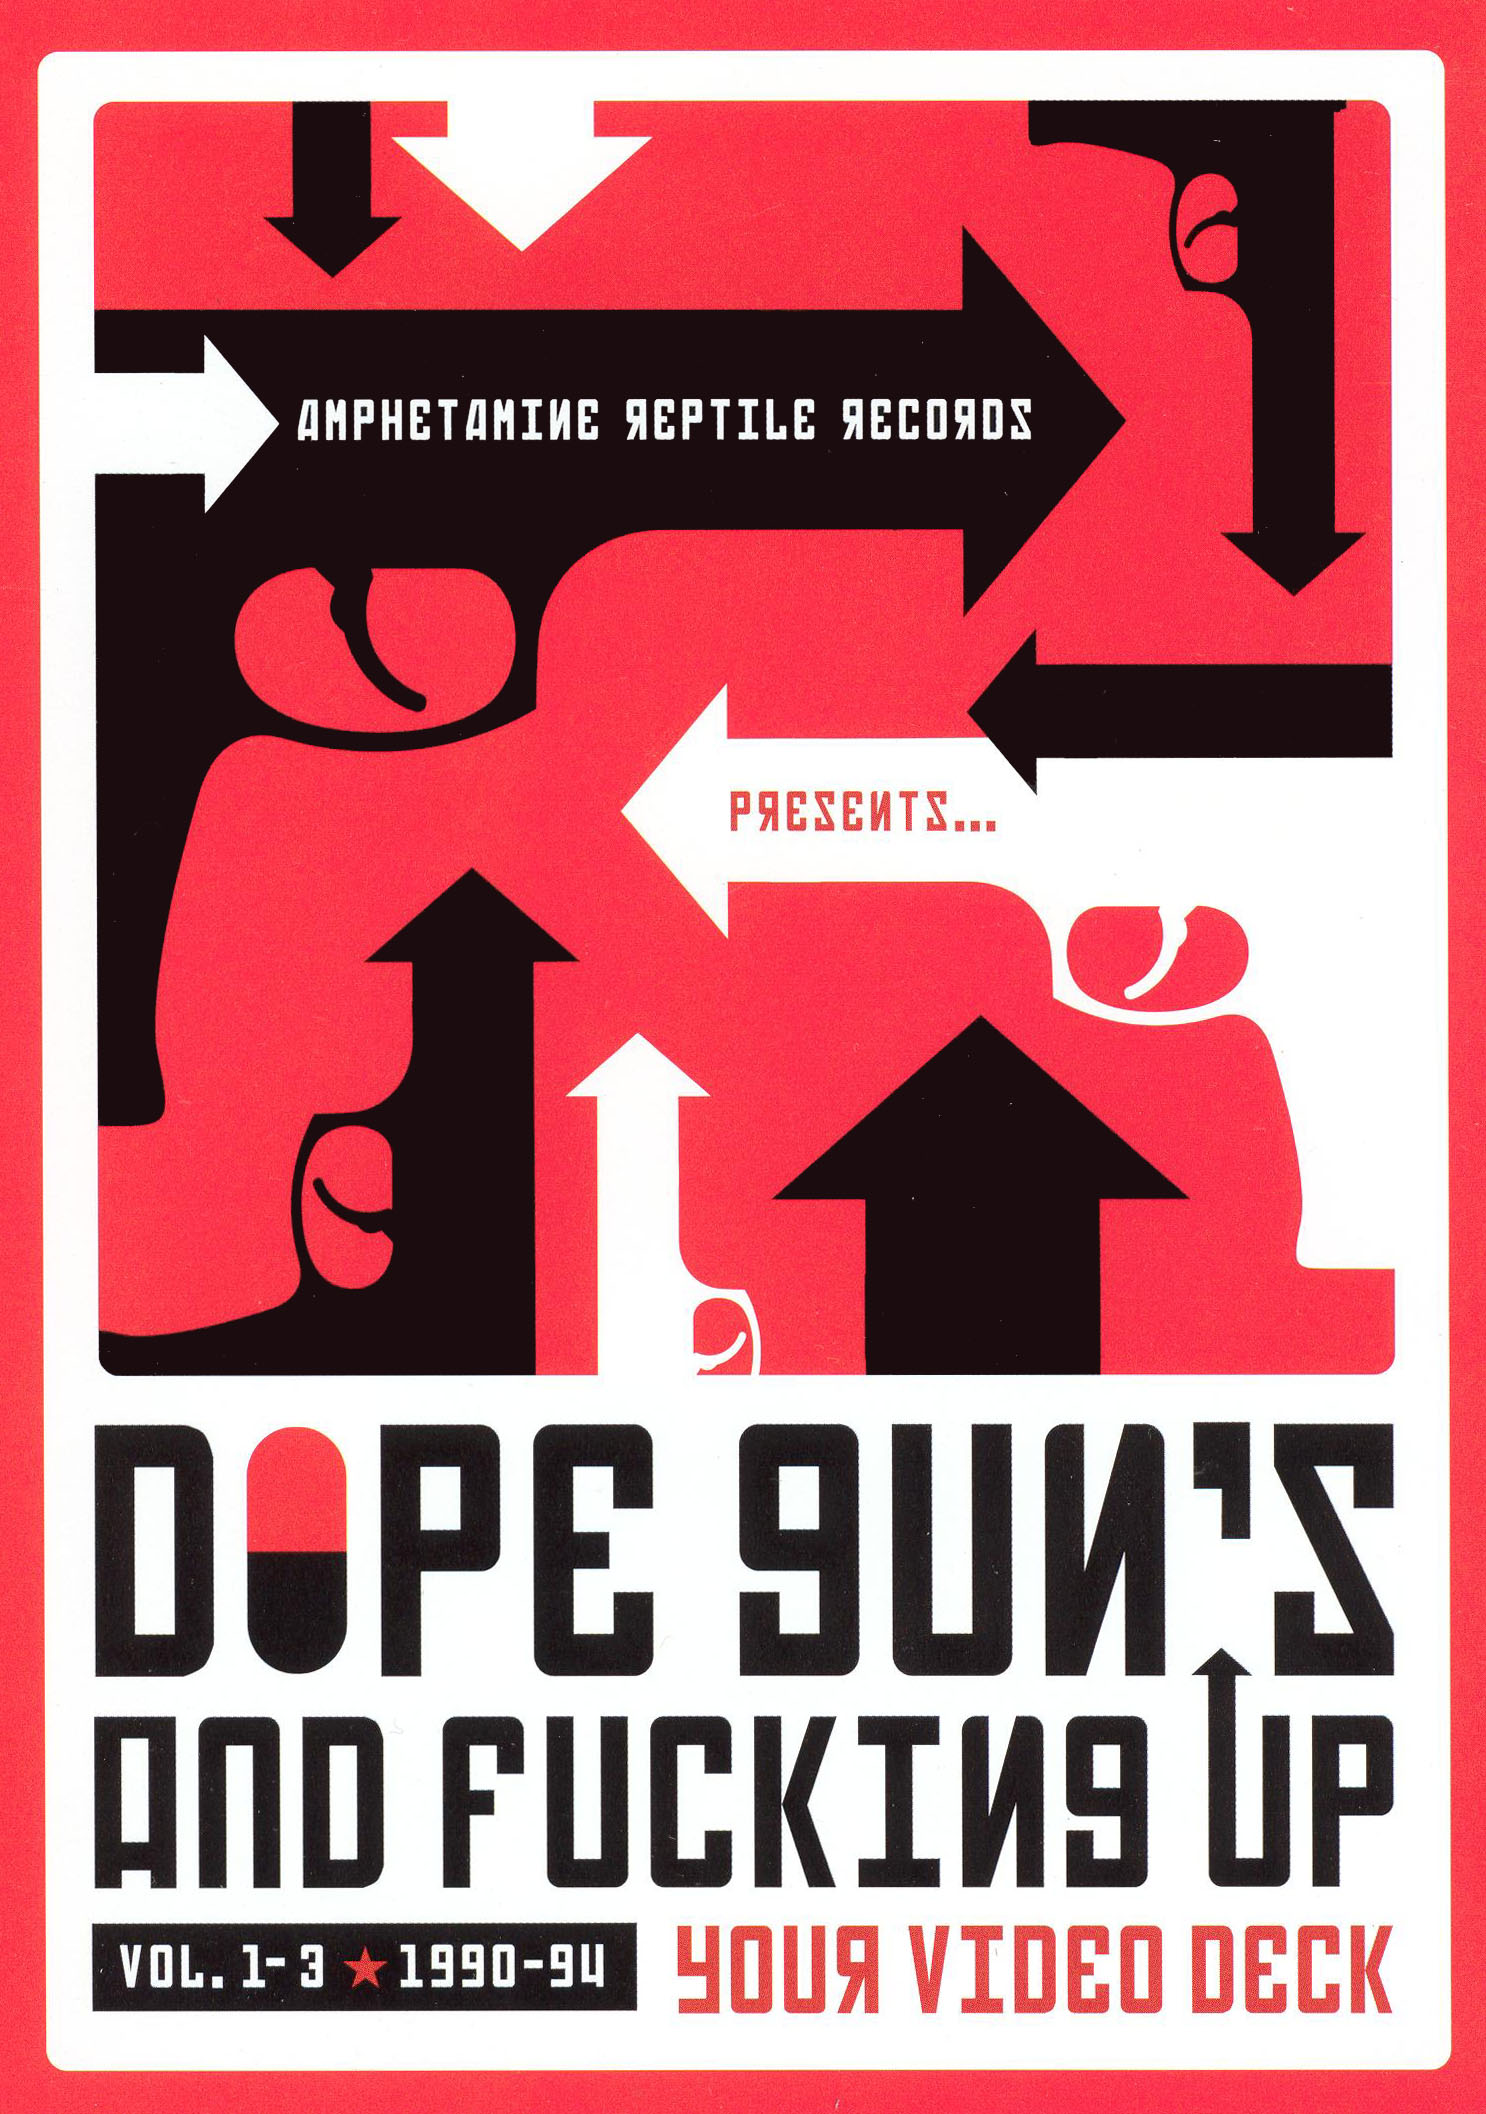 Dope, Guns and Fucking up Your Videodeck, Vol. 1